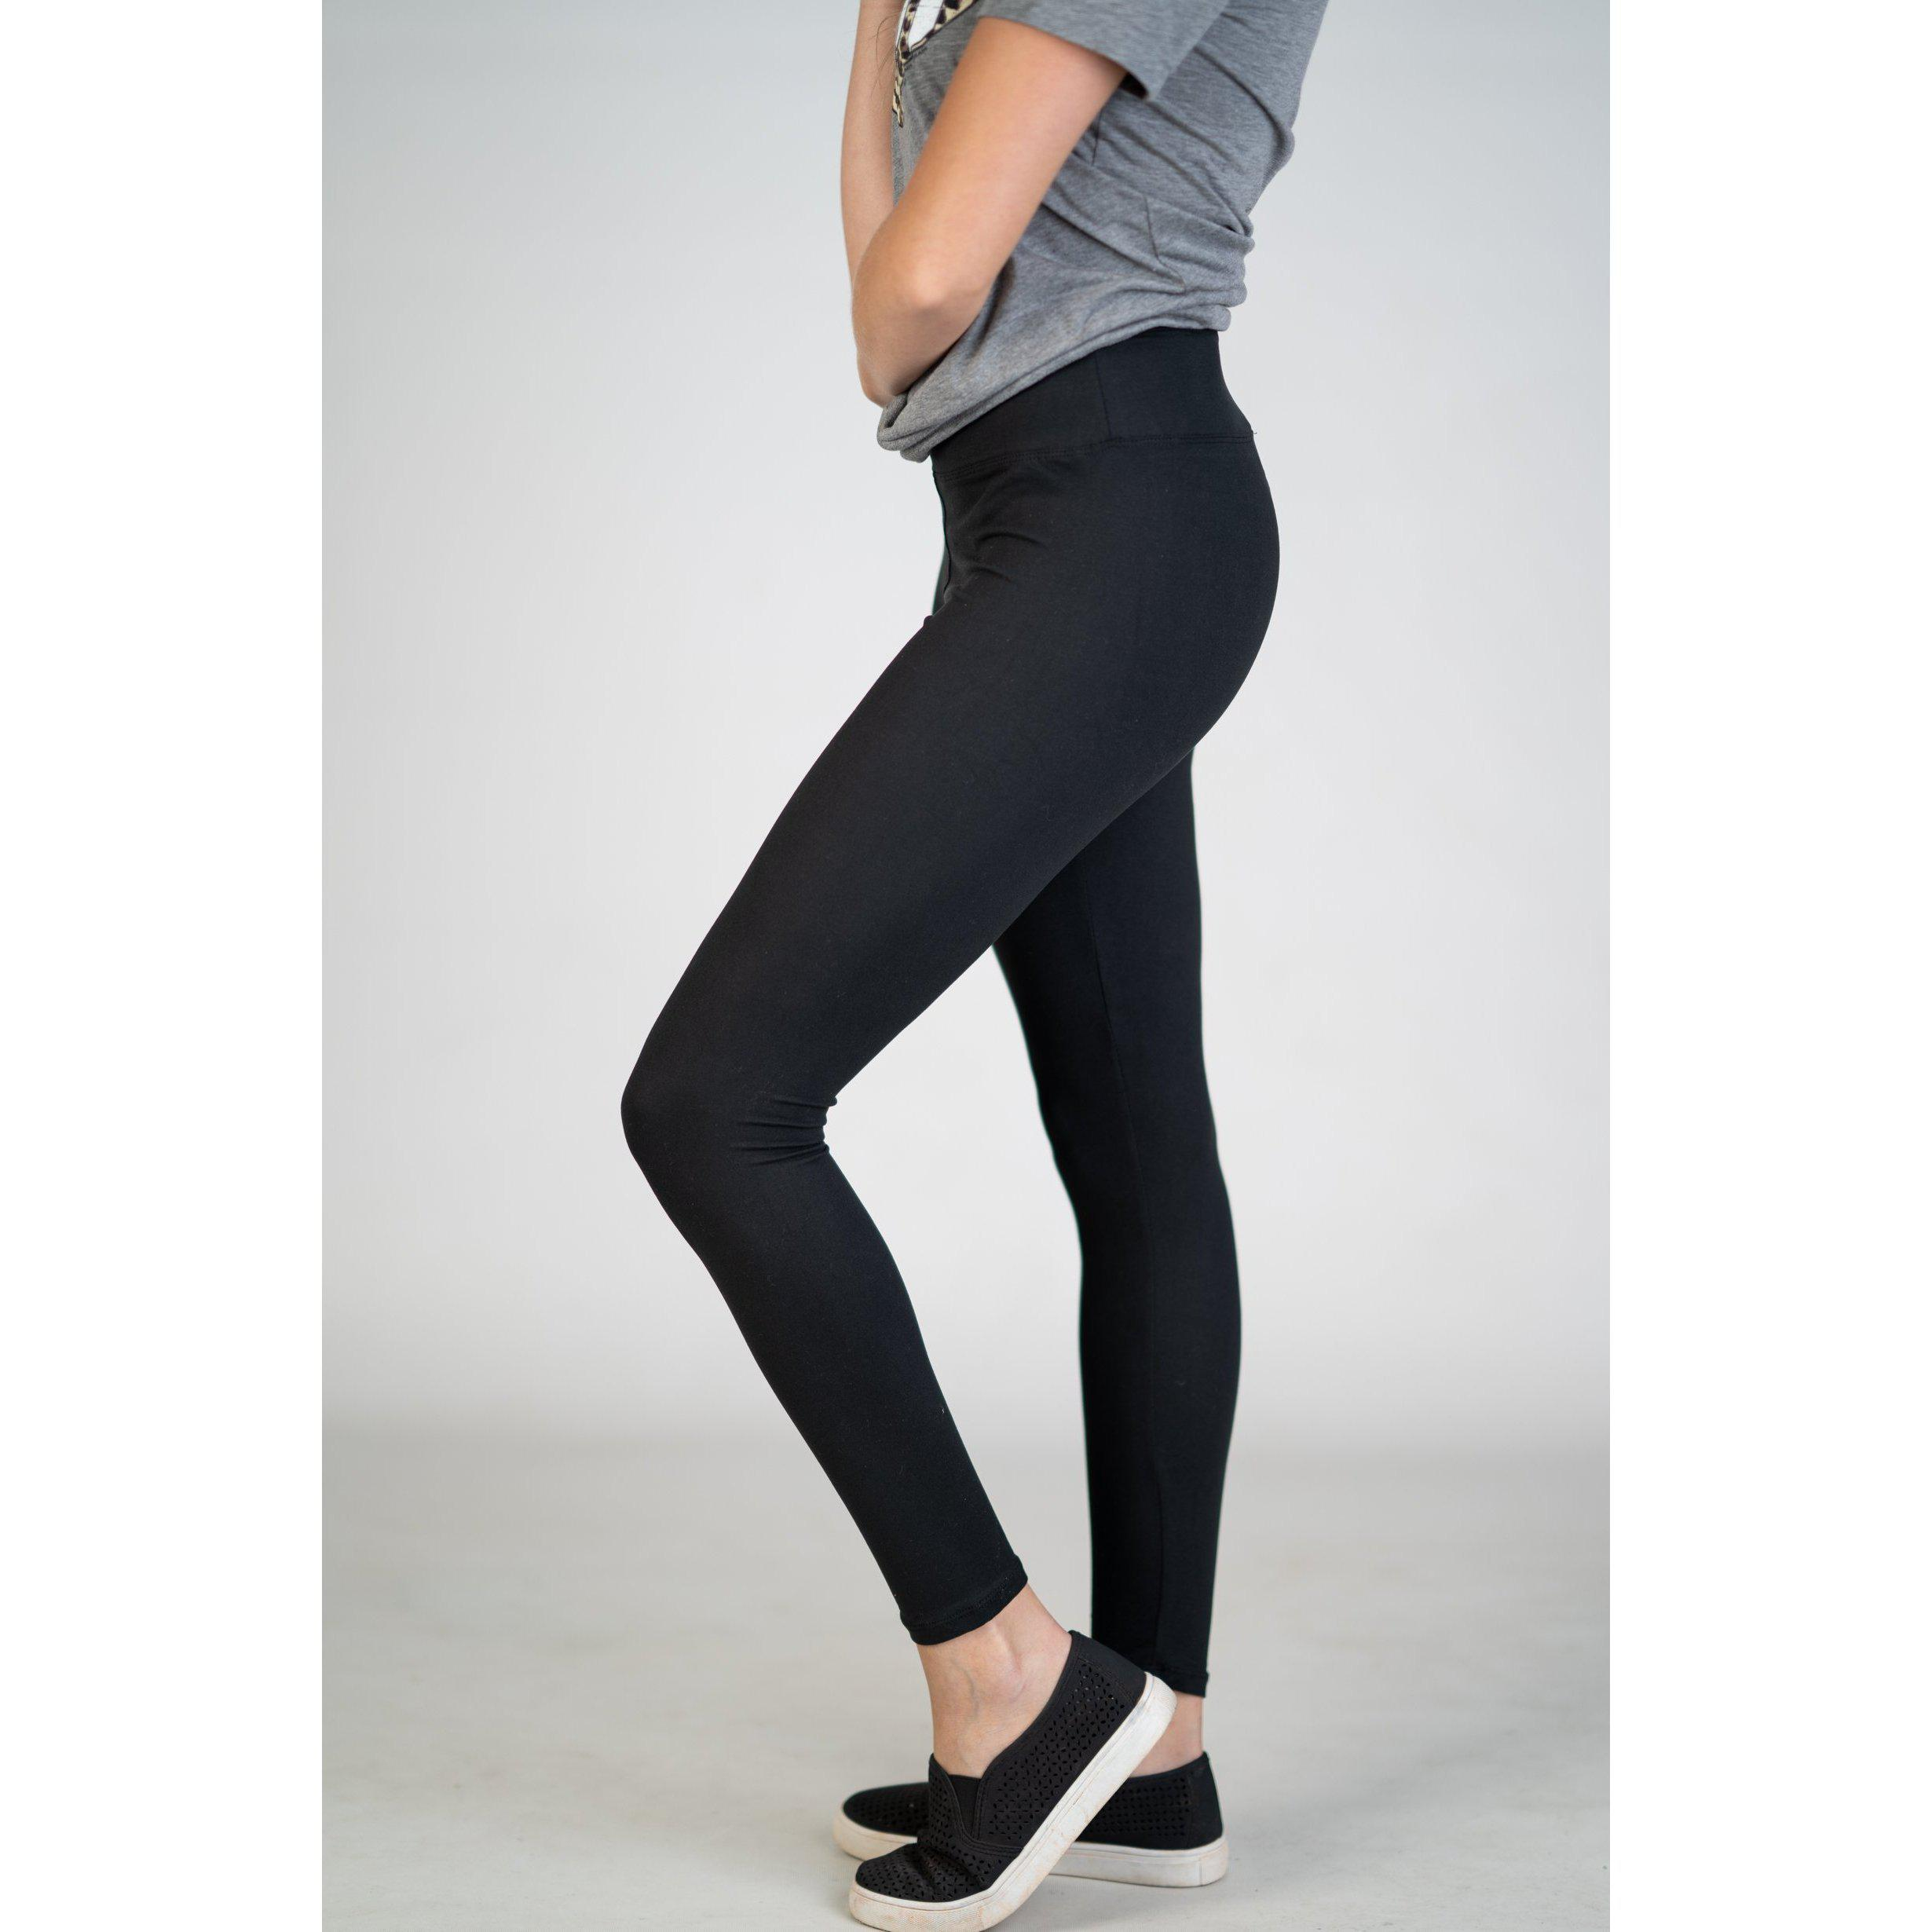 Love it Womens High Waist Yoga Band Leggings in REGULAR (Black or Charcoal)